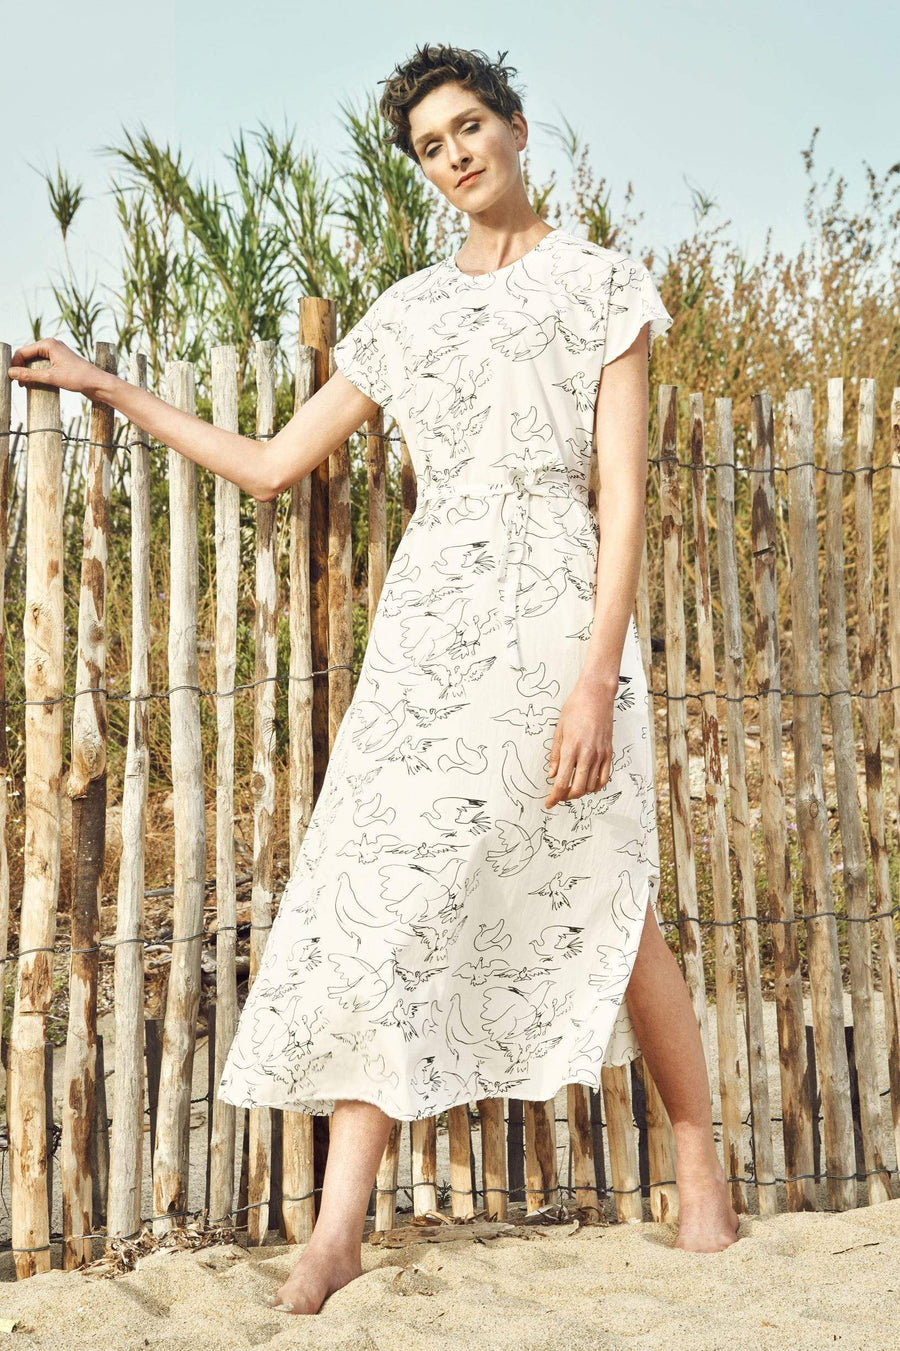 Sophia Schneider-Esleben dresses Nina Dress in Organic Cotton. sustainable fashion ethical fashion